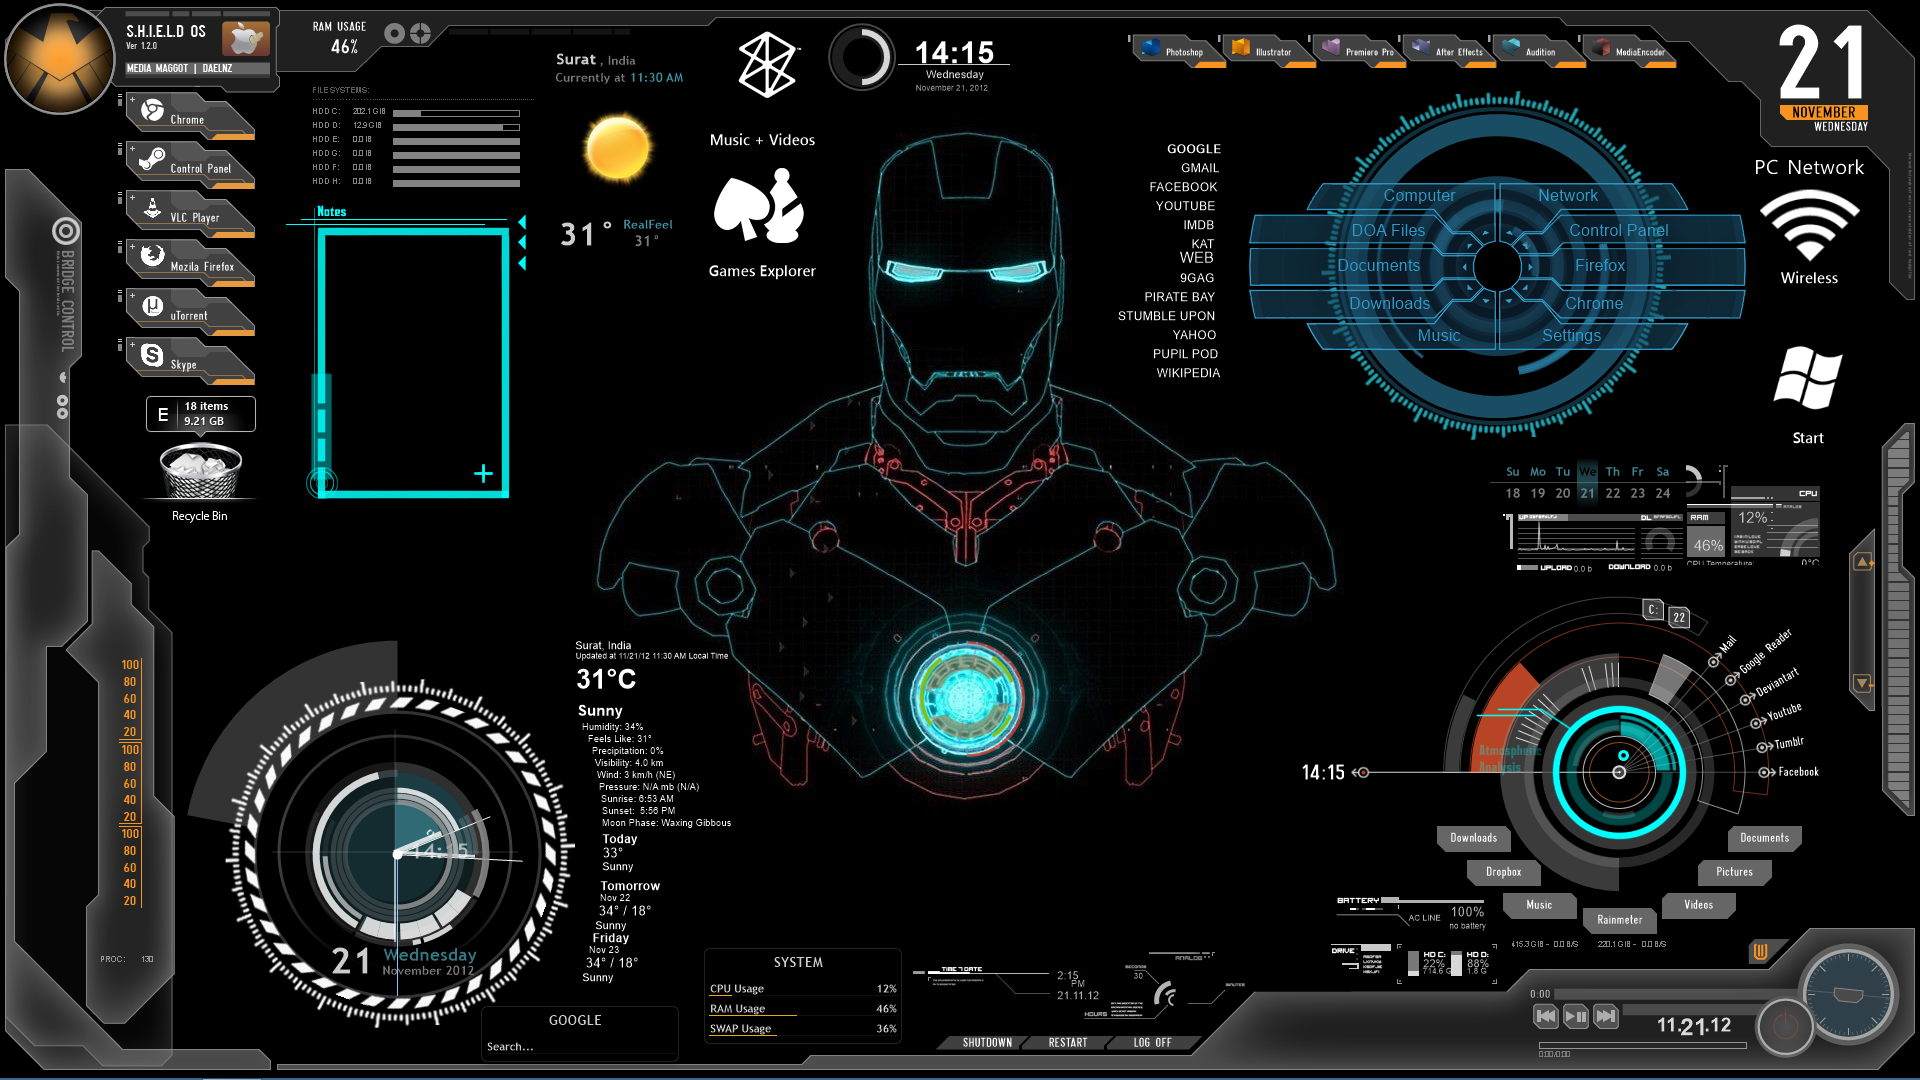 Ironman1 windows7 rainmeter theme for Bureau windows 7 rainmeter